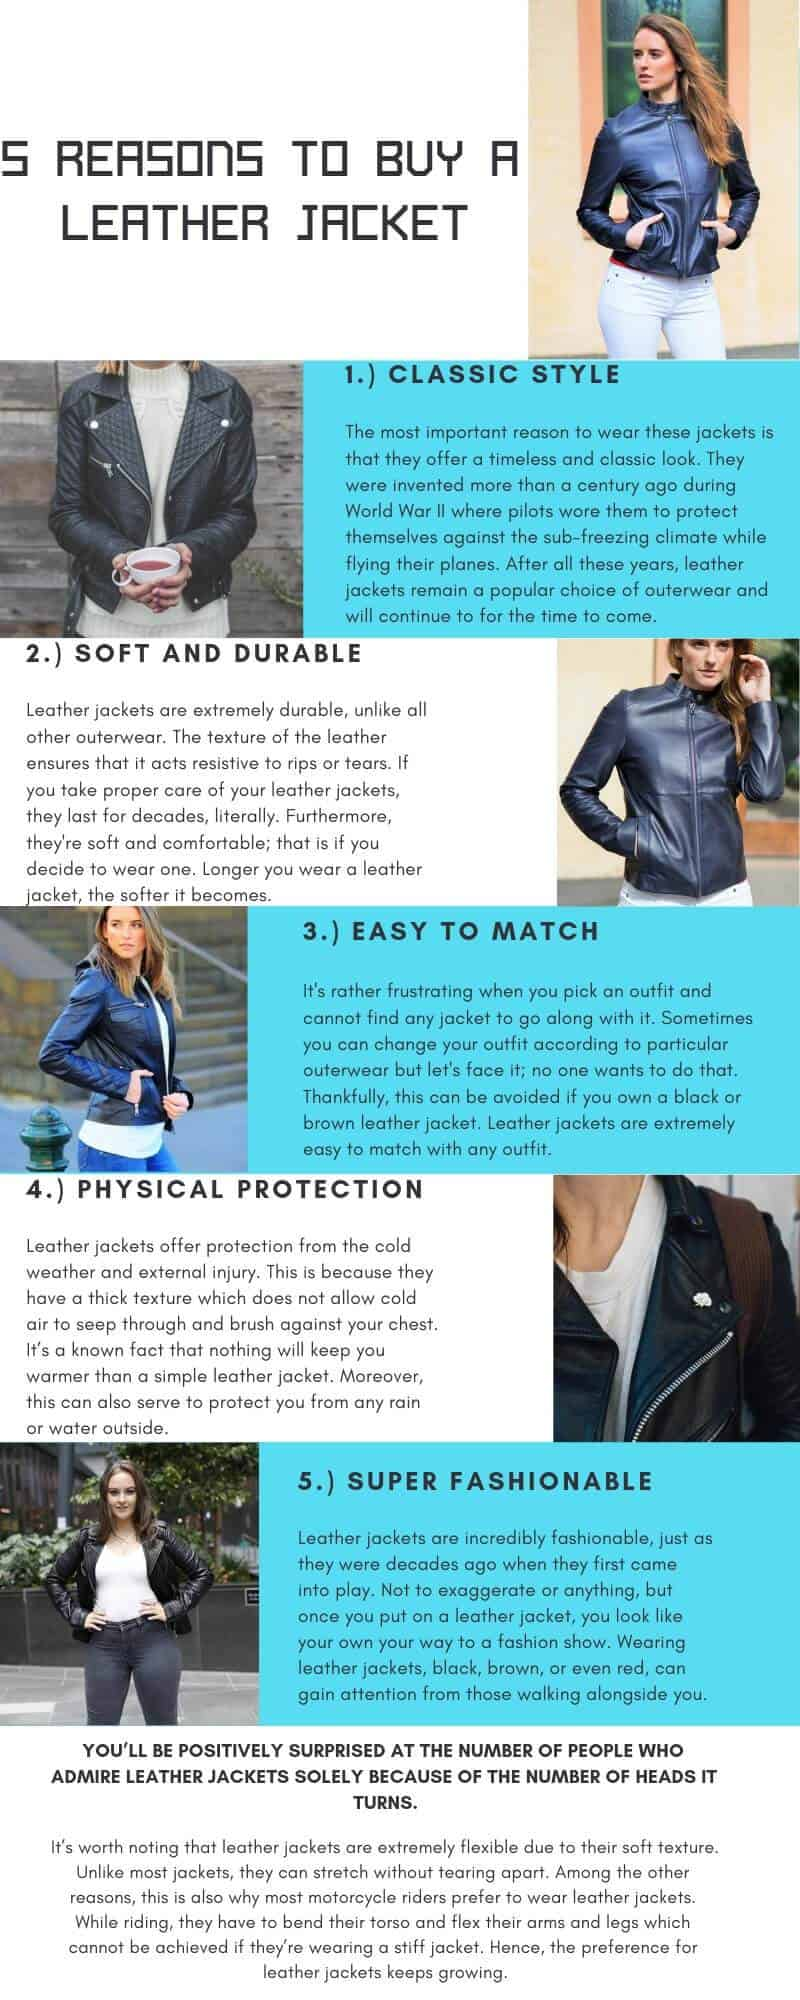 5 Reasons to buy a leather jacket